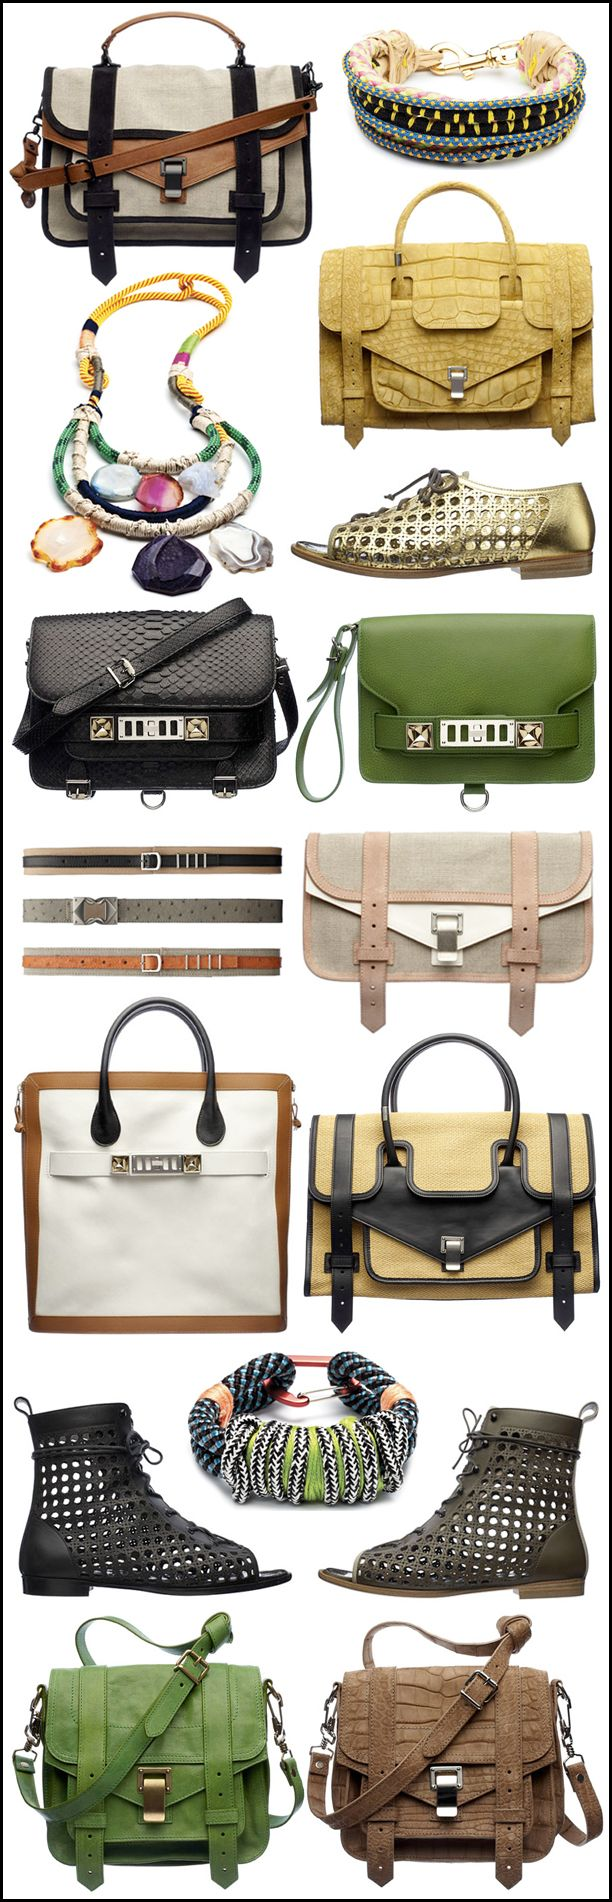 Proenza Schouler Pre-Spring/Summer 11 Accessories